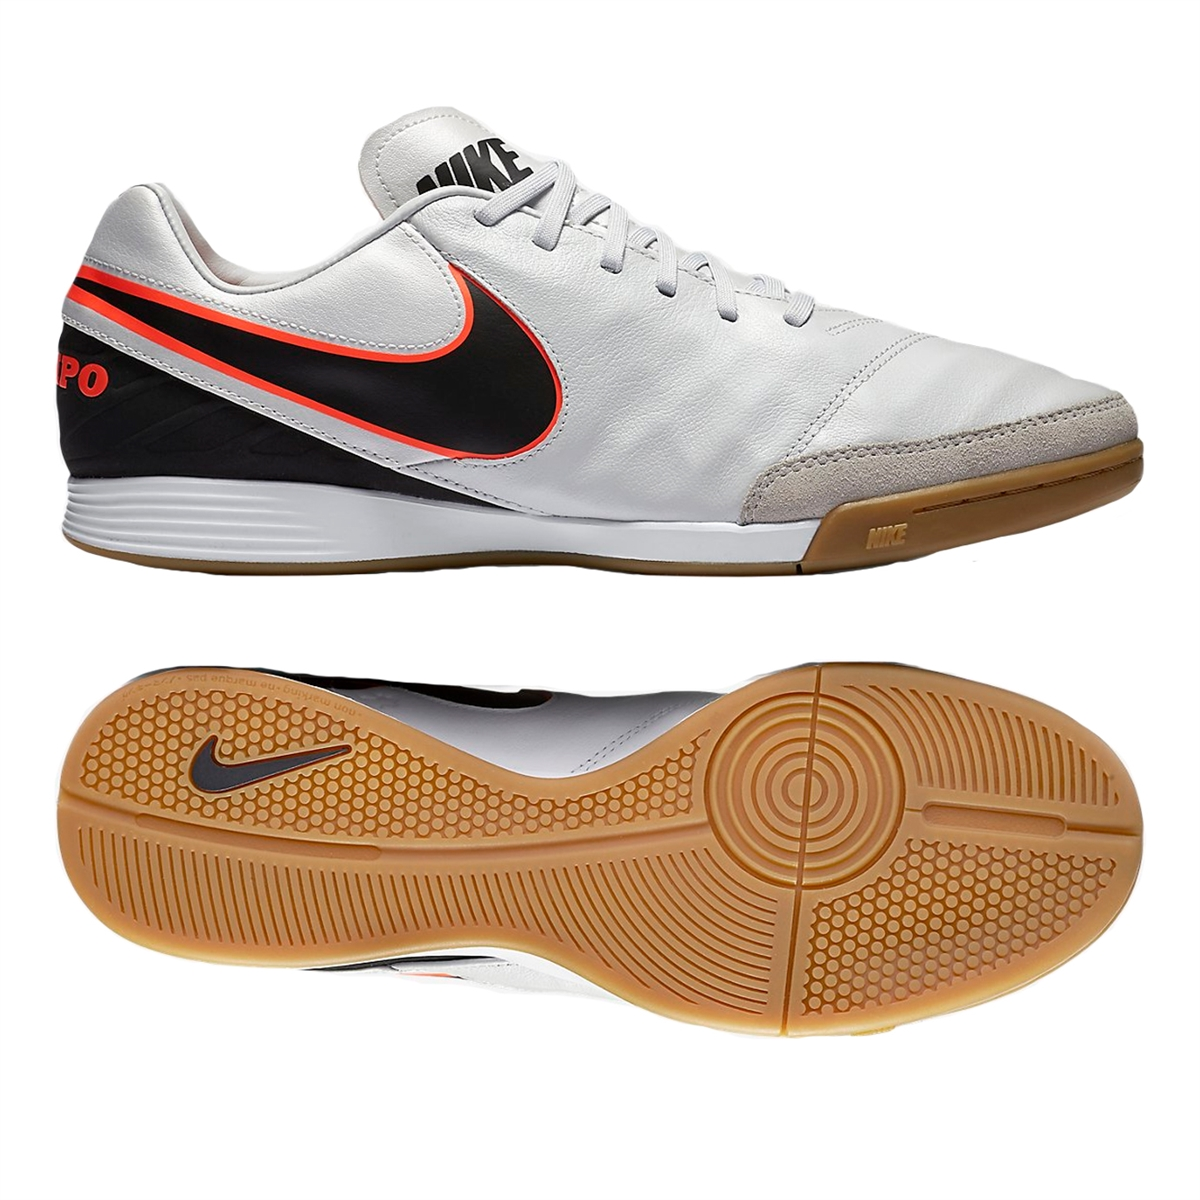 a43511272 ... discount nike tiempo mystic v ic indoor soccer shoes pure platinum black  5385a 44333